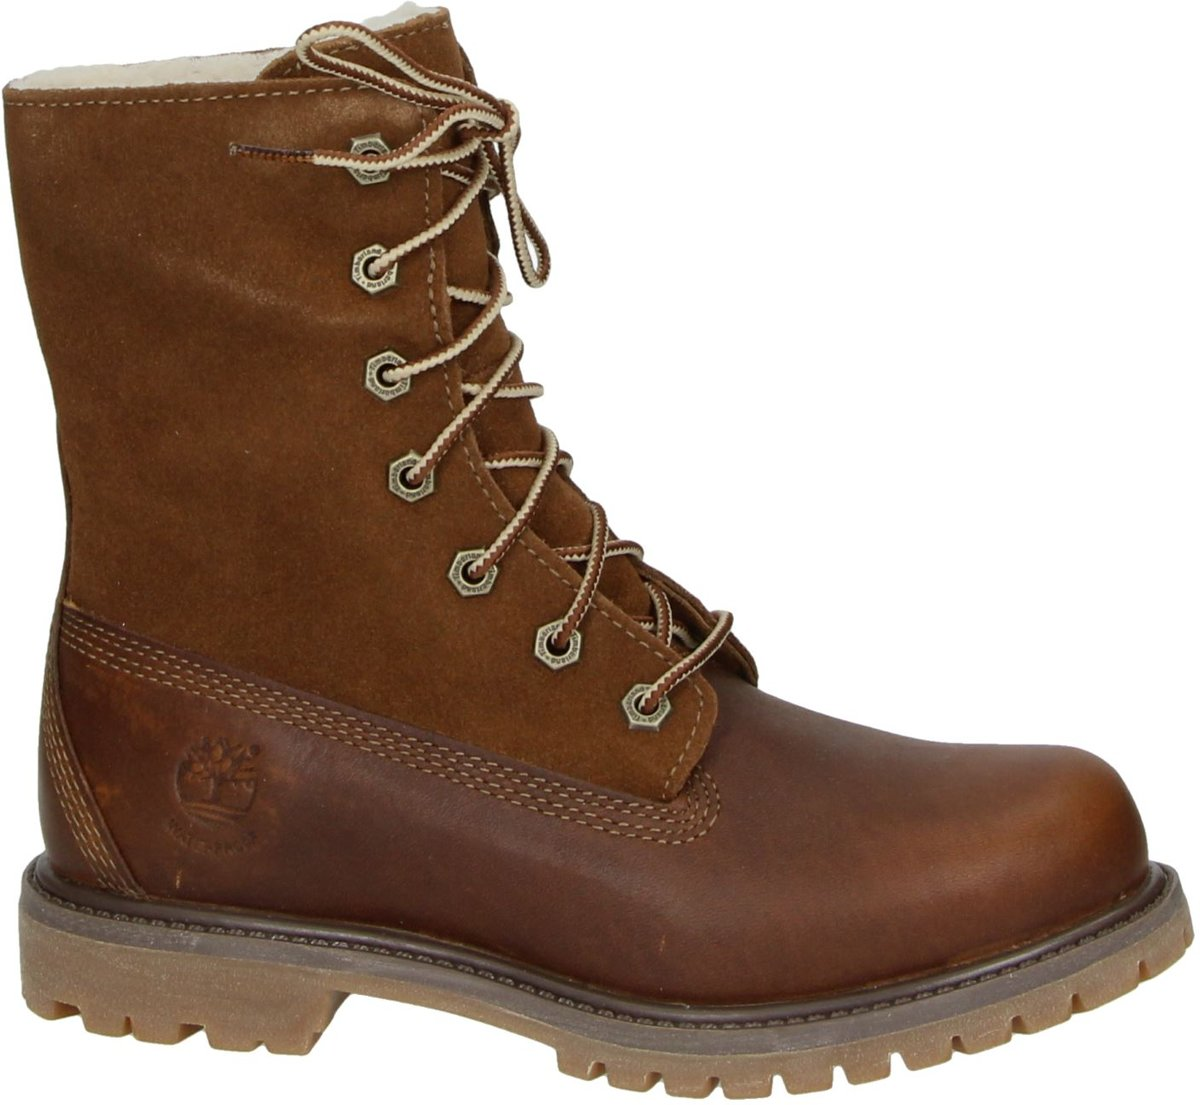 Timberland Authentic Teddy dames boot Bruin Maat 37